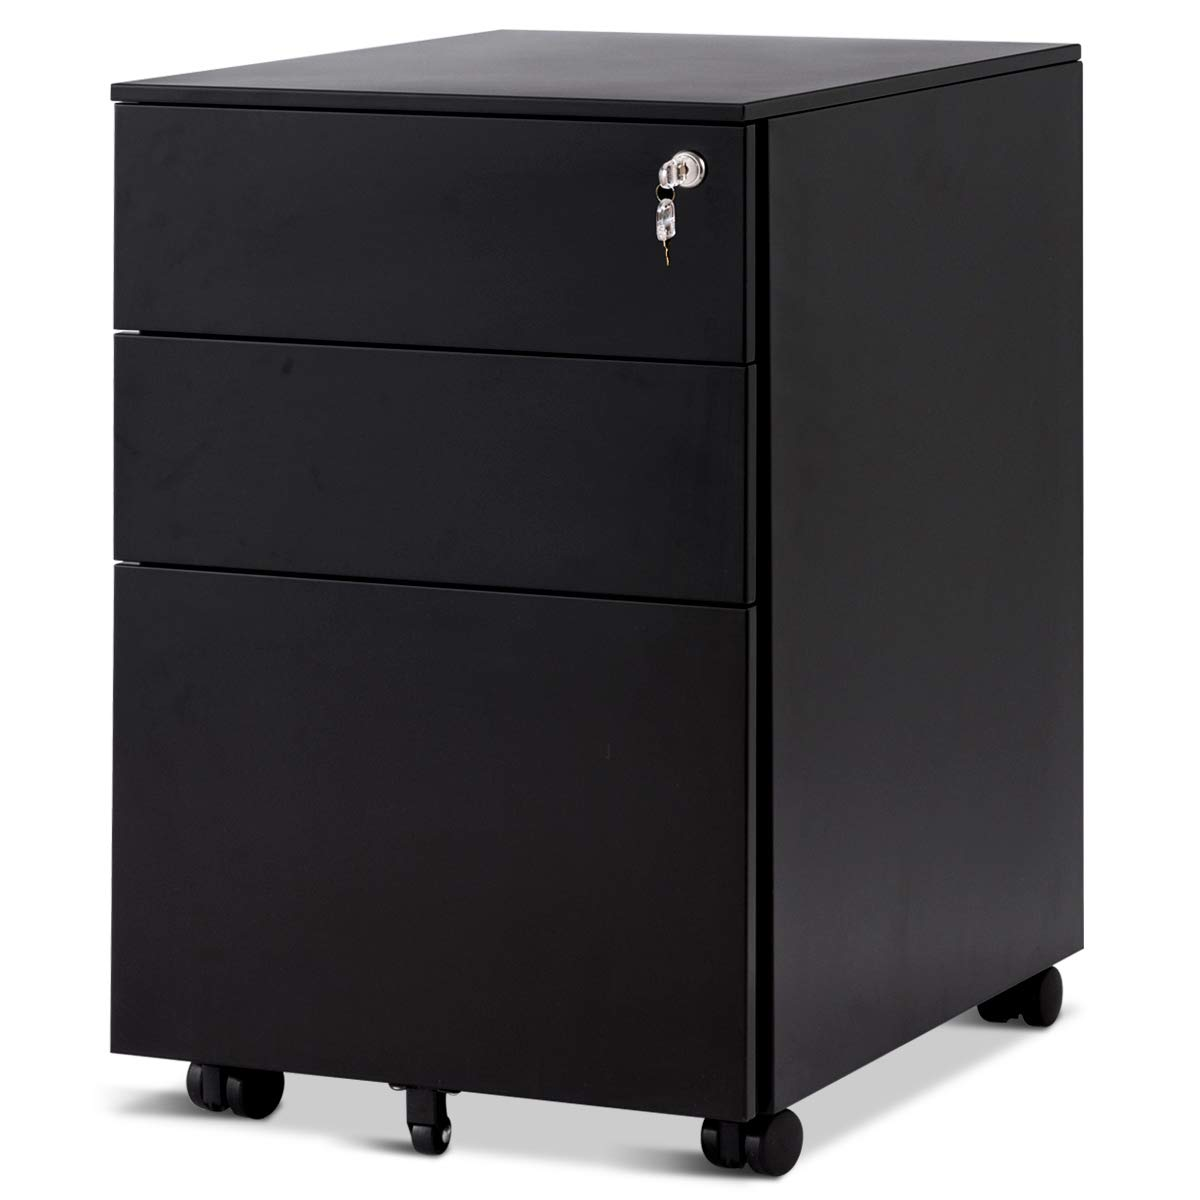 Giantex File Cabinet W/3 Lockable Drawers Include 2 Keys, Wheels, Hanging File Frame and Removable Tray, Metal Vertical Full Assembled for Office Mobile Pedestal Rolling File Cabinet (Black)